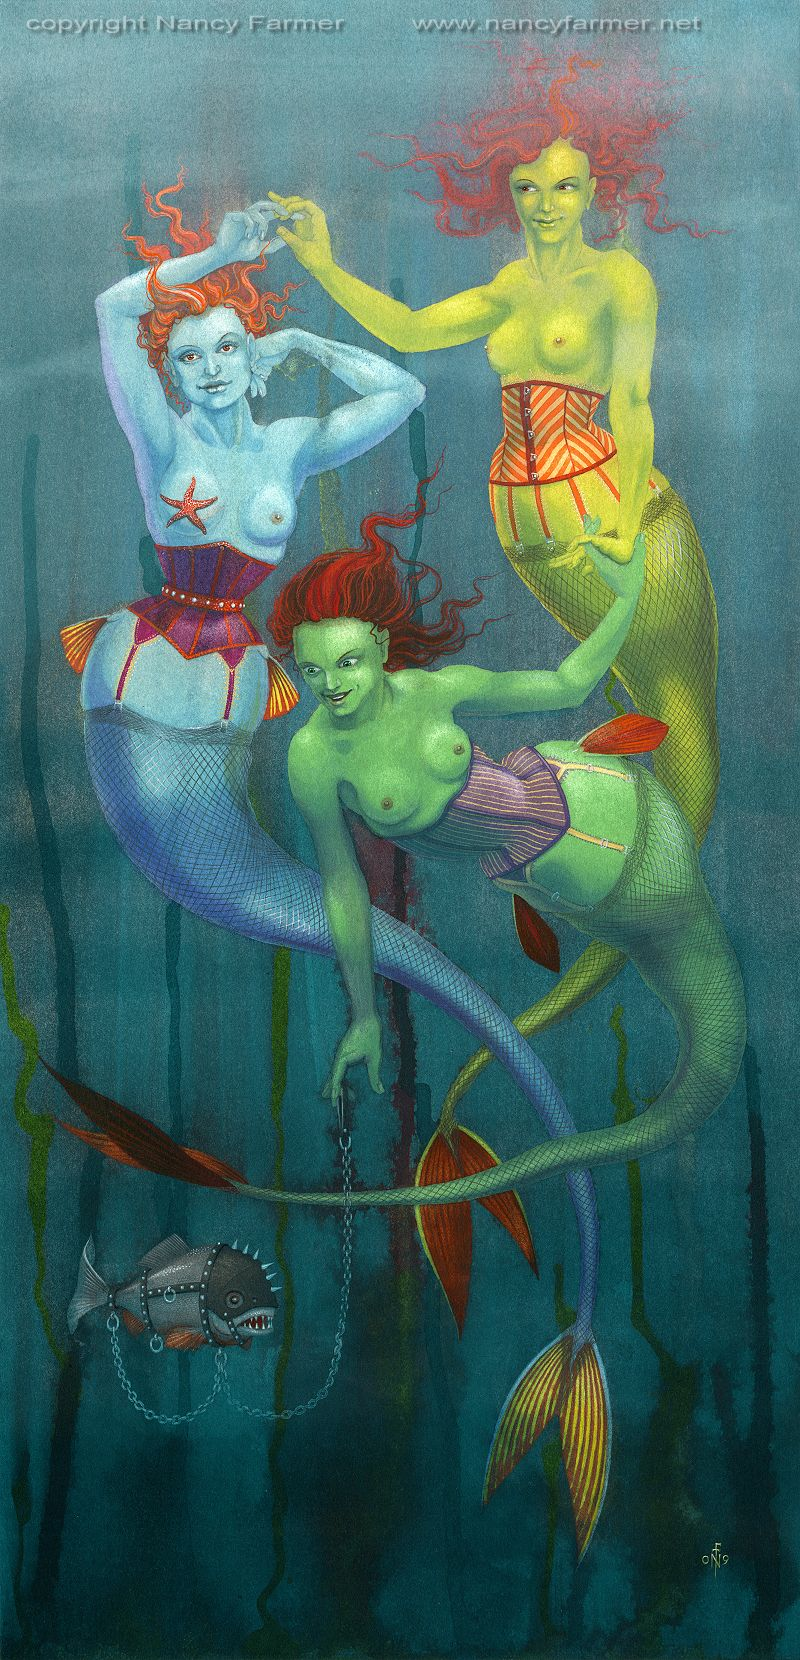 Fishnets - painting by Nancy Farmer